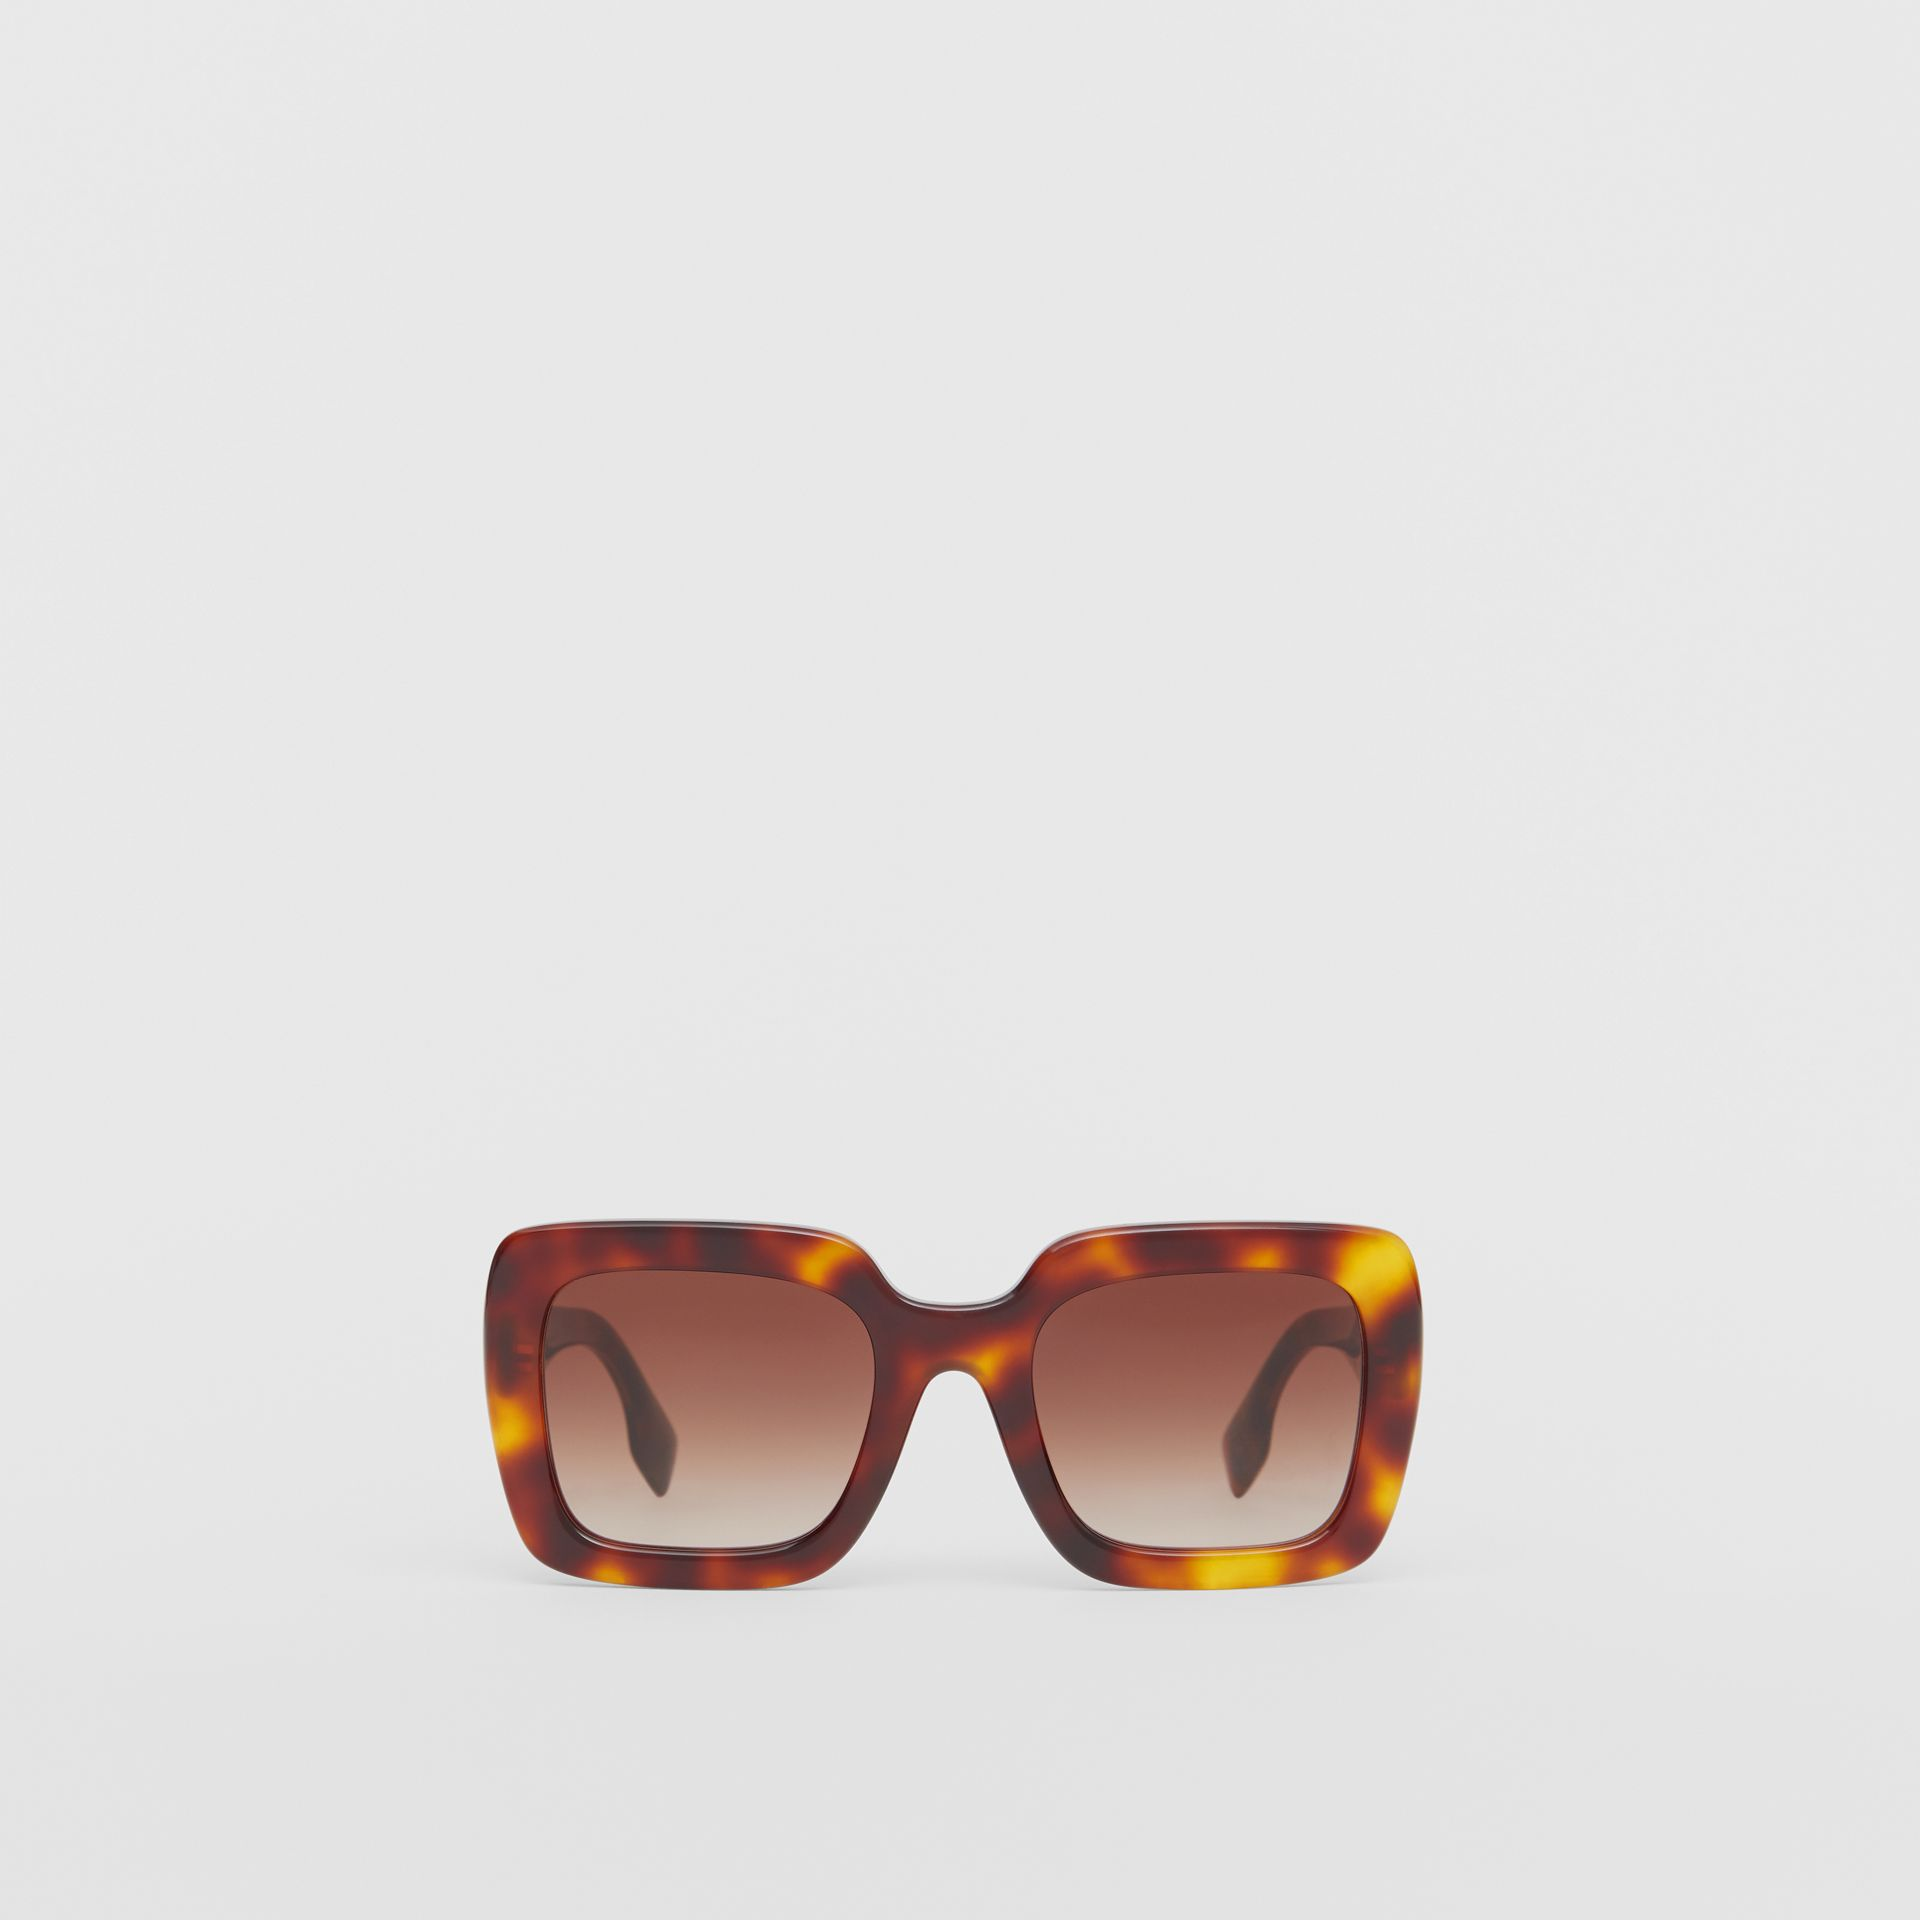 Oversized Square Frame Sunglasses in Tortoiseshell - Women | Burberry Australia - gallery image 0